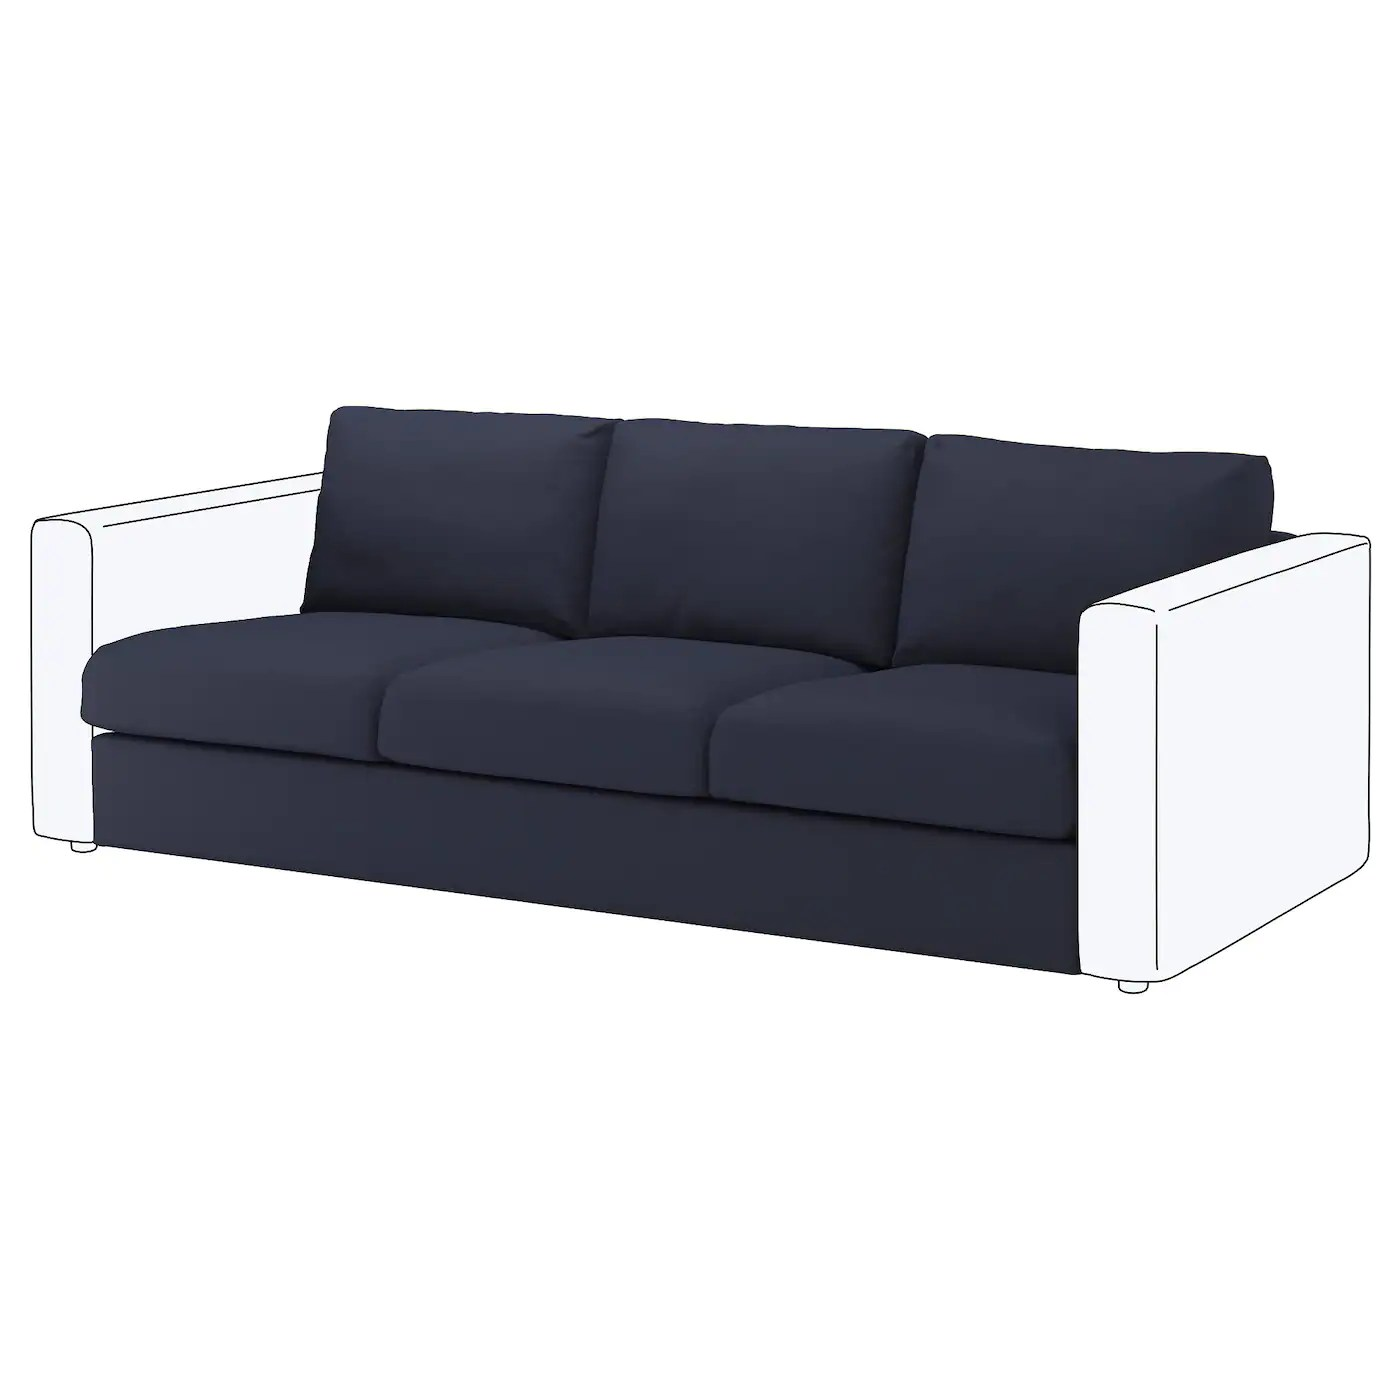 Kika Sofas Unboxing And Assembly Of Sofa